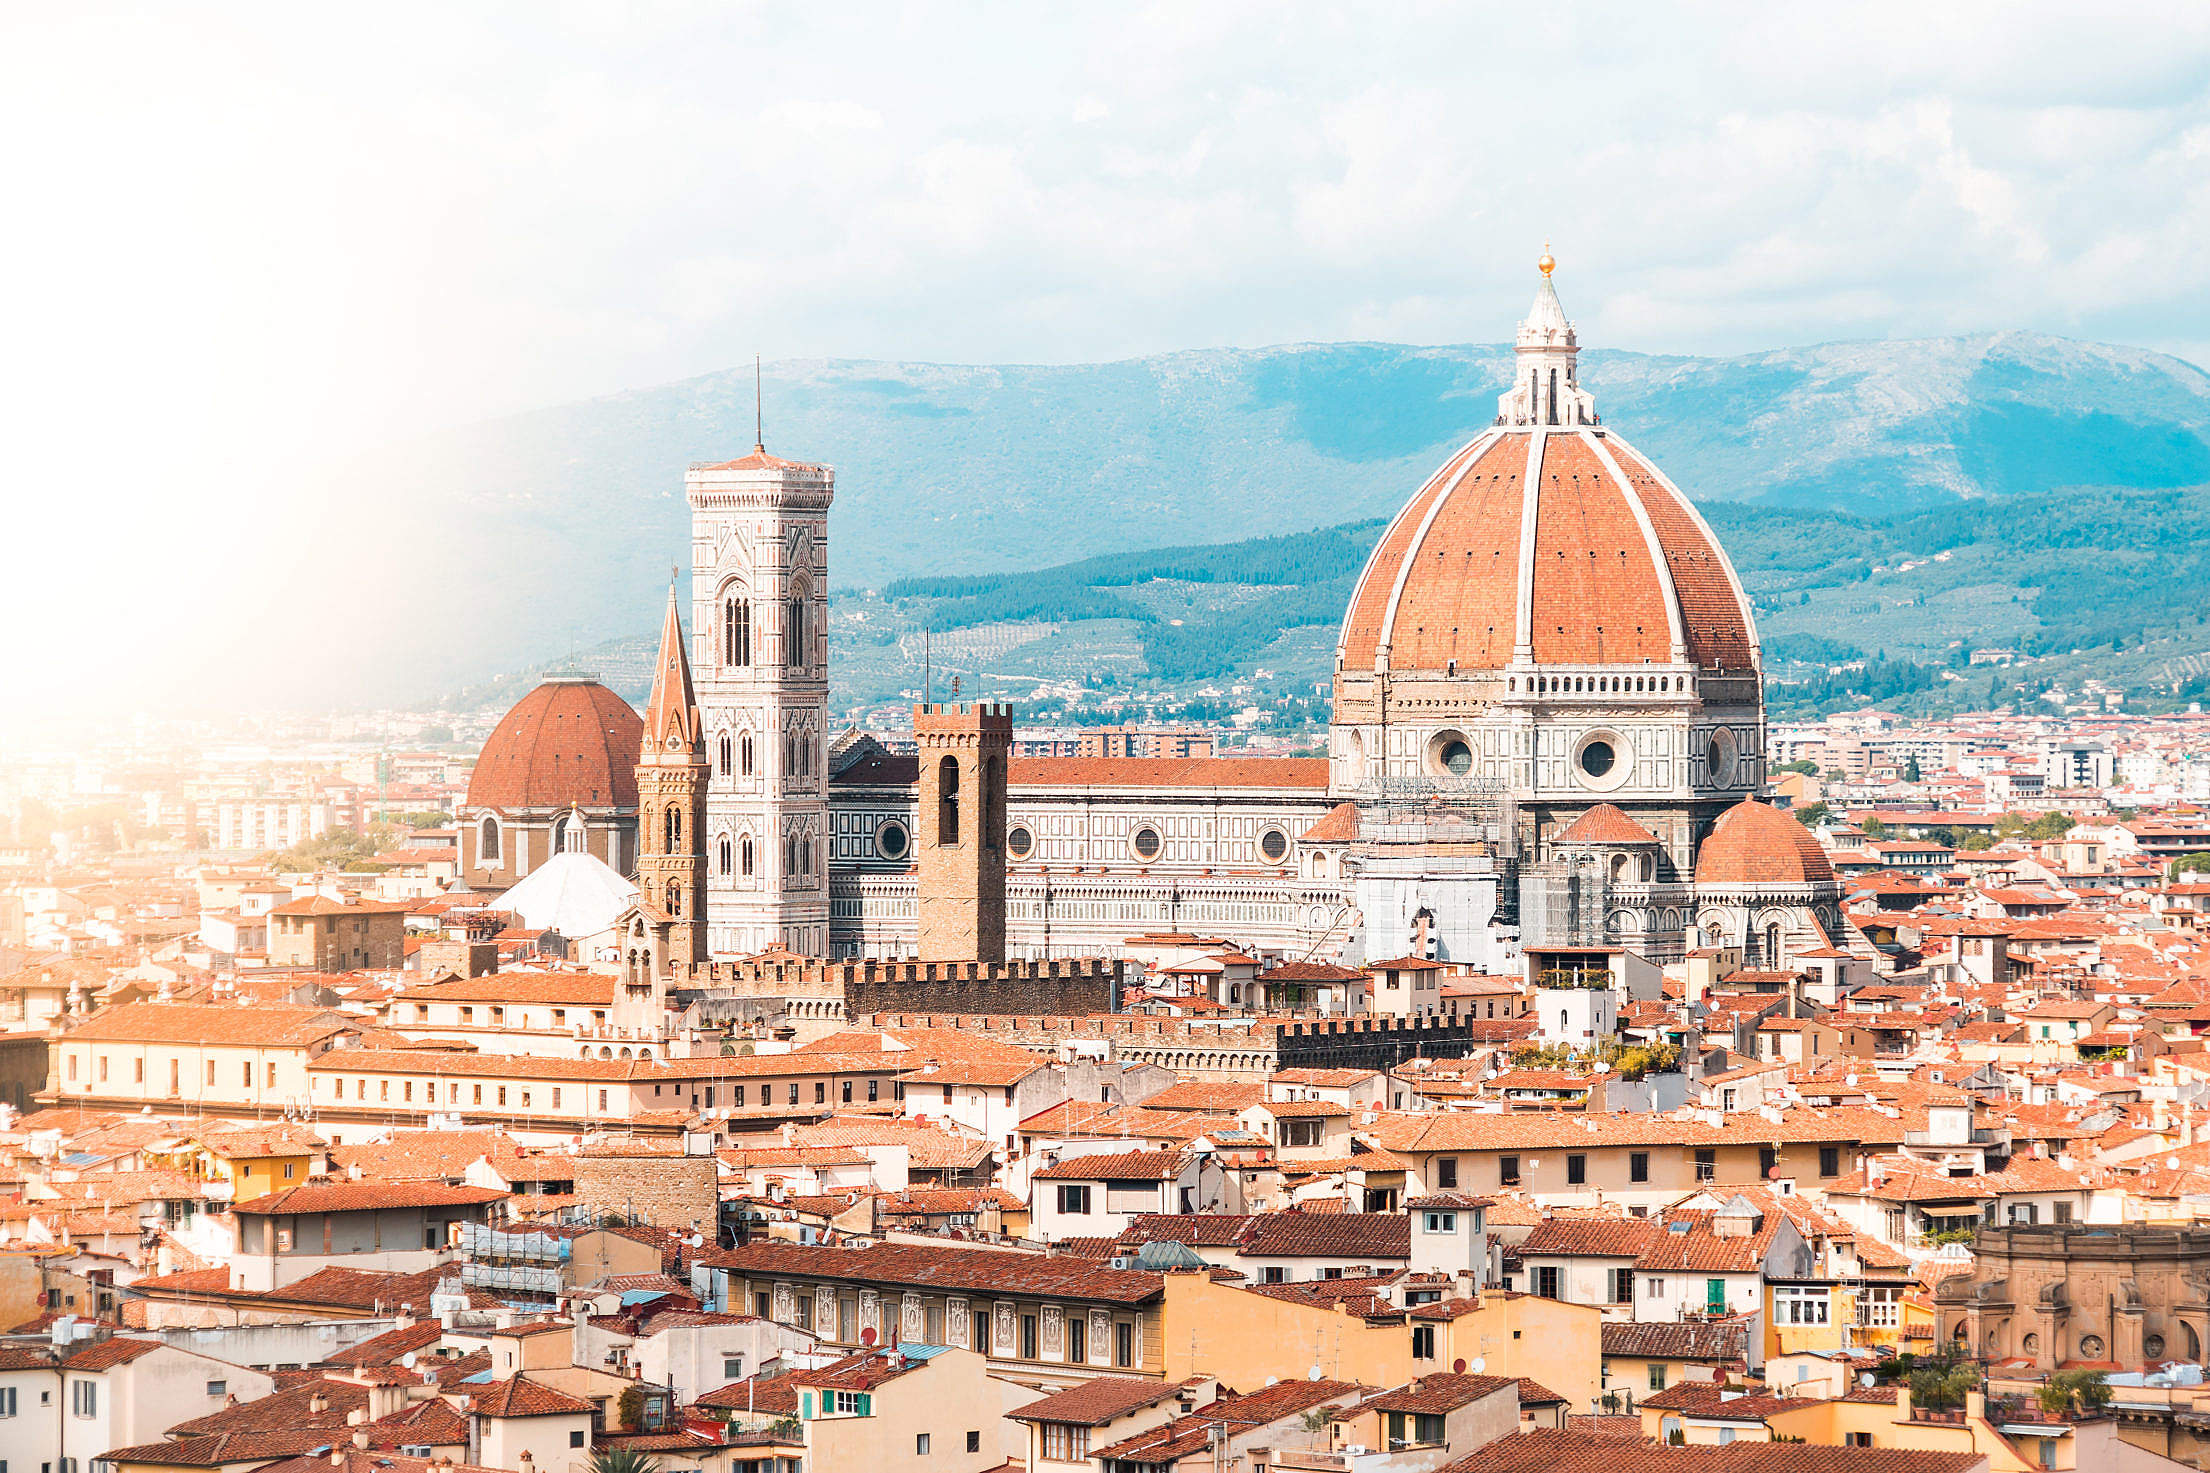 Duomo S. Maria del Fiore in Florence, Italy Free Stock Photo